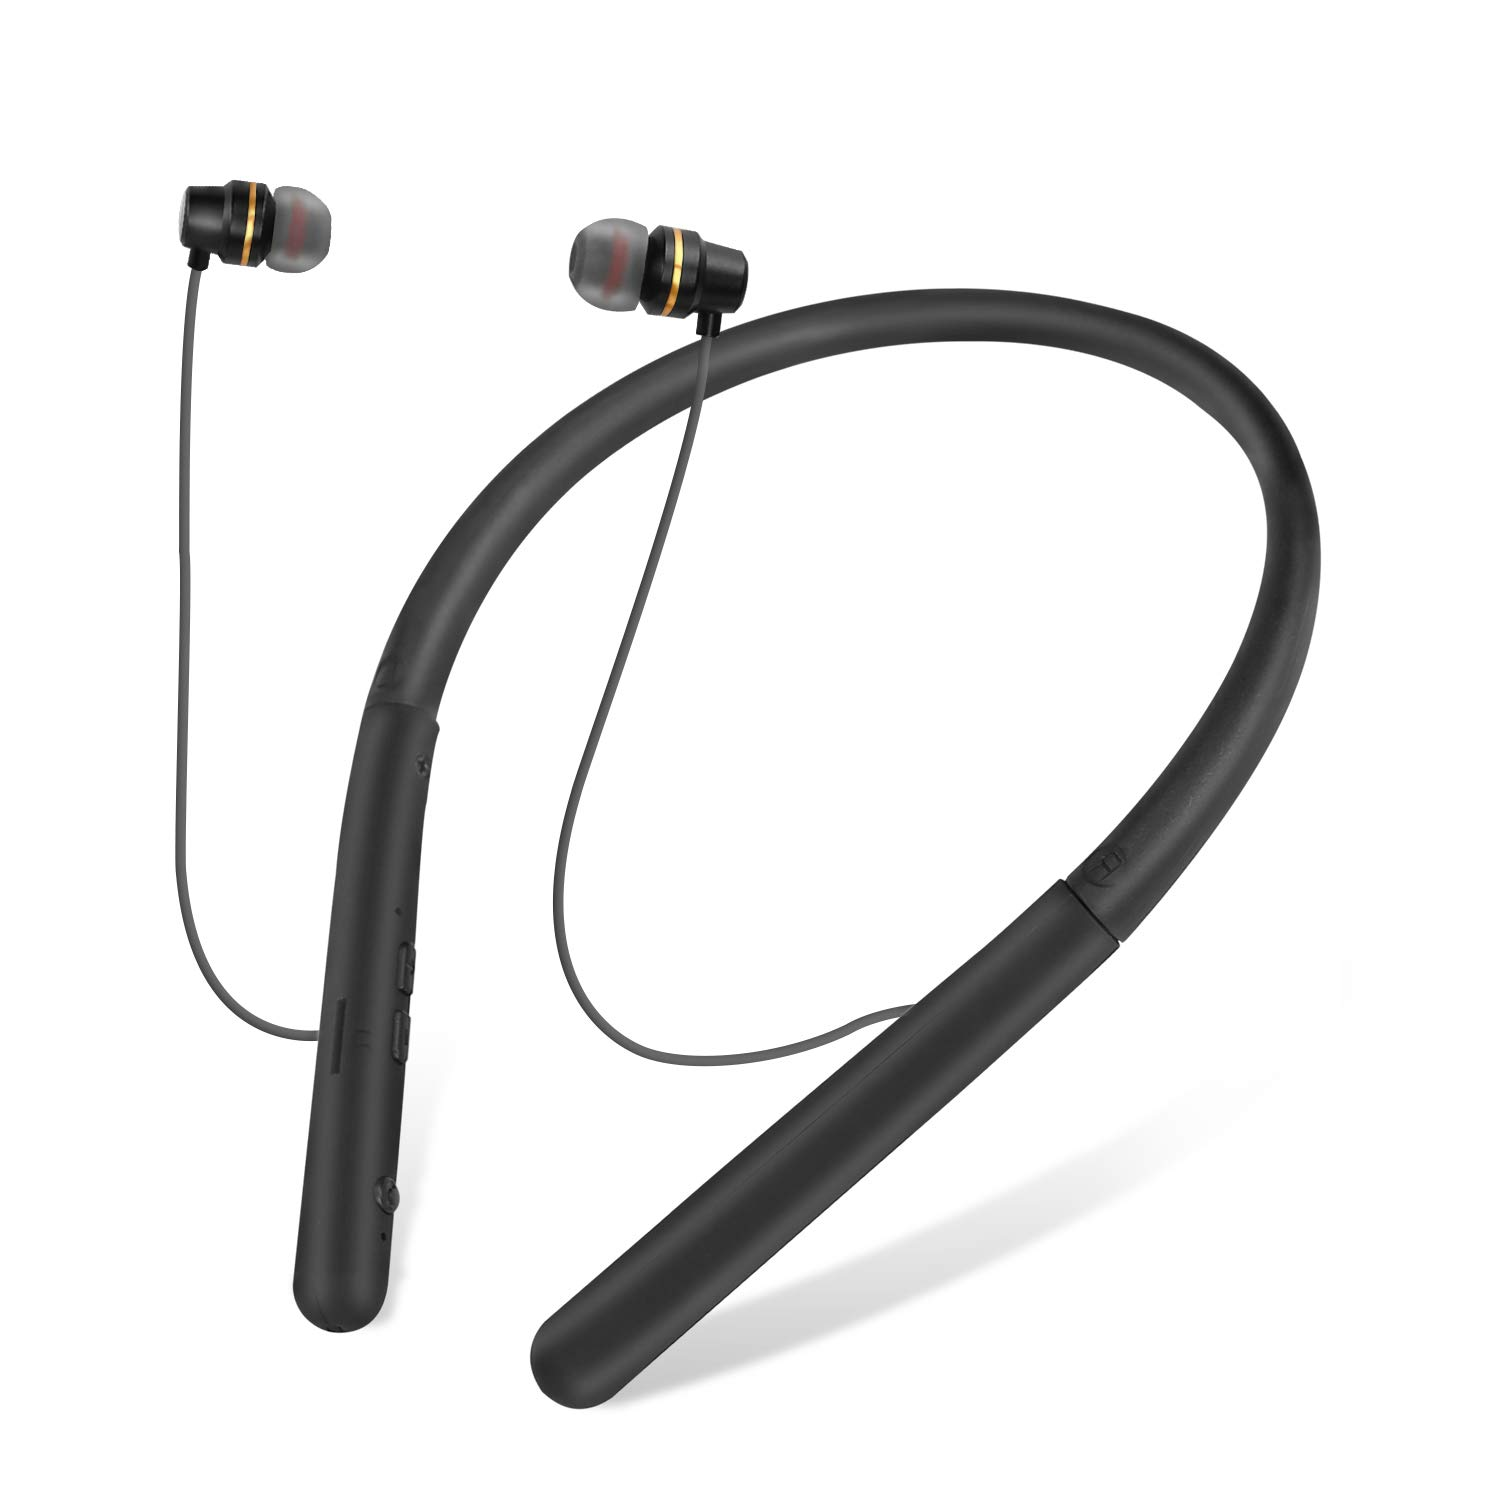 Bluetooth Headphones, Wireless Bluetooth Headset, Sports Sweat-Proof Noise Cancelling Stereo Earphones with Mic